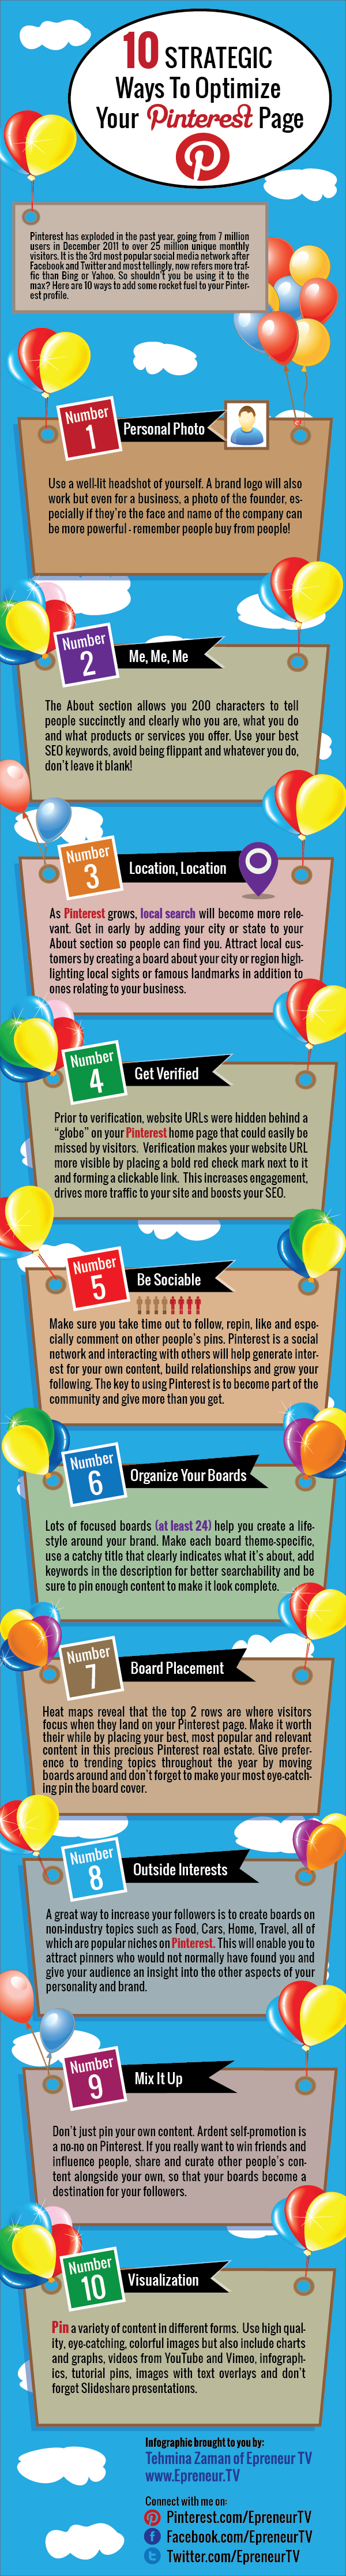 10 Strategic Ways to Optimize Your Pinterest Page - Infographic | Jeffbullas's Blog